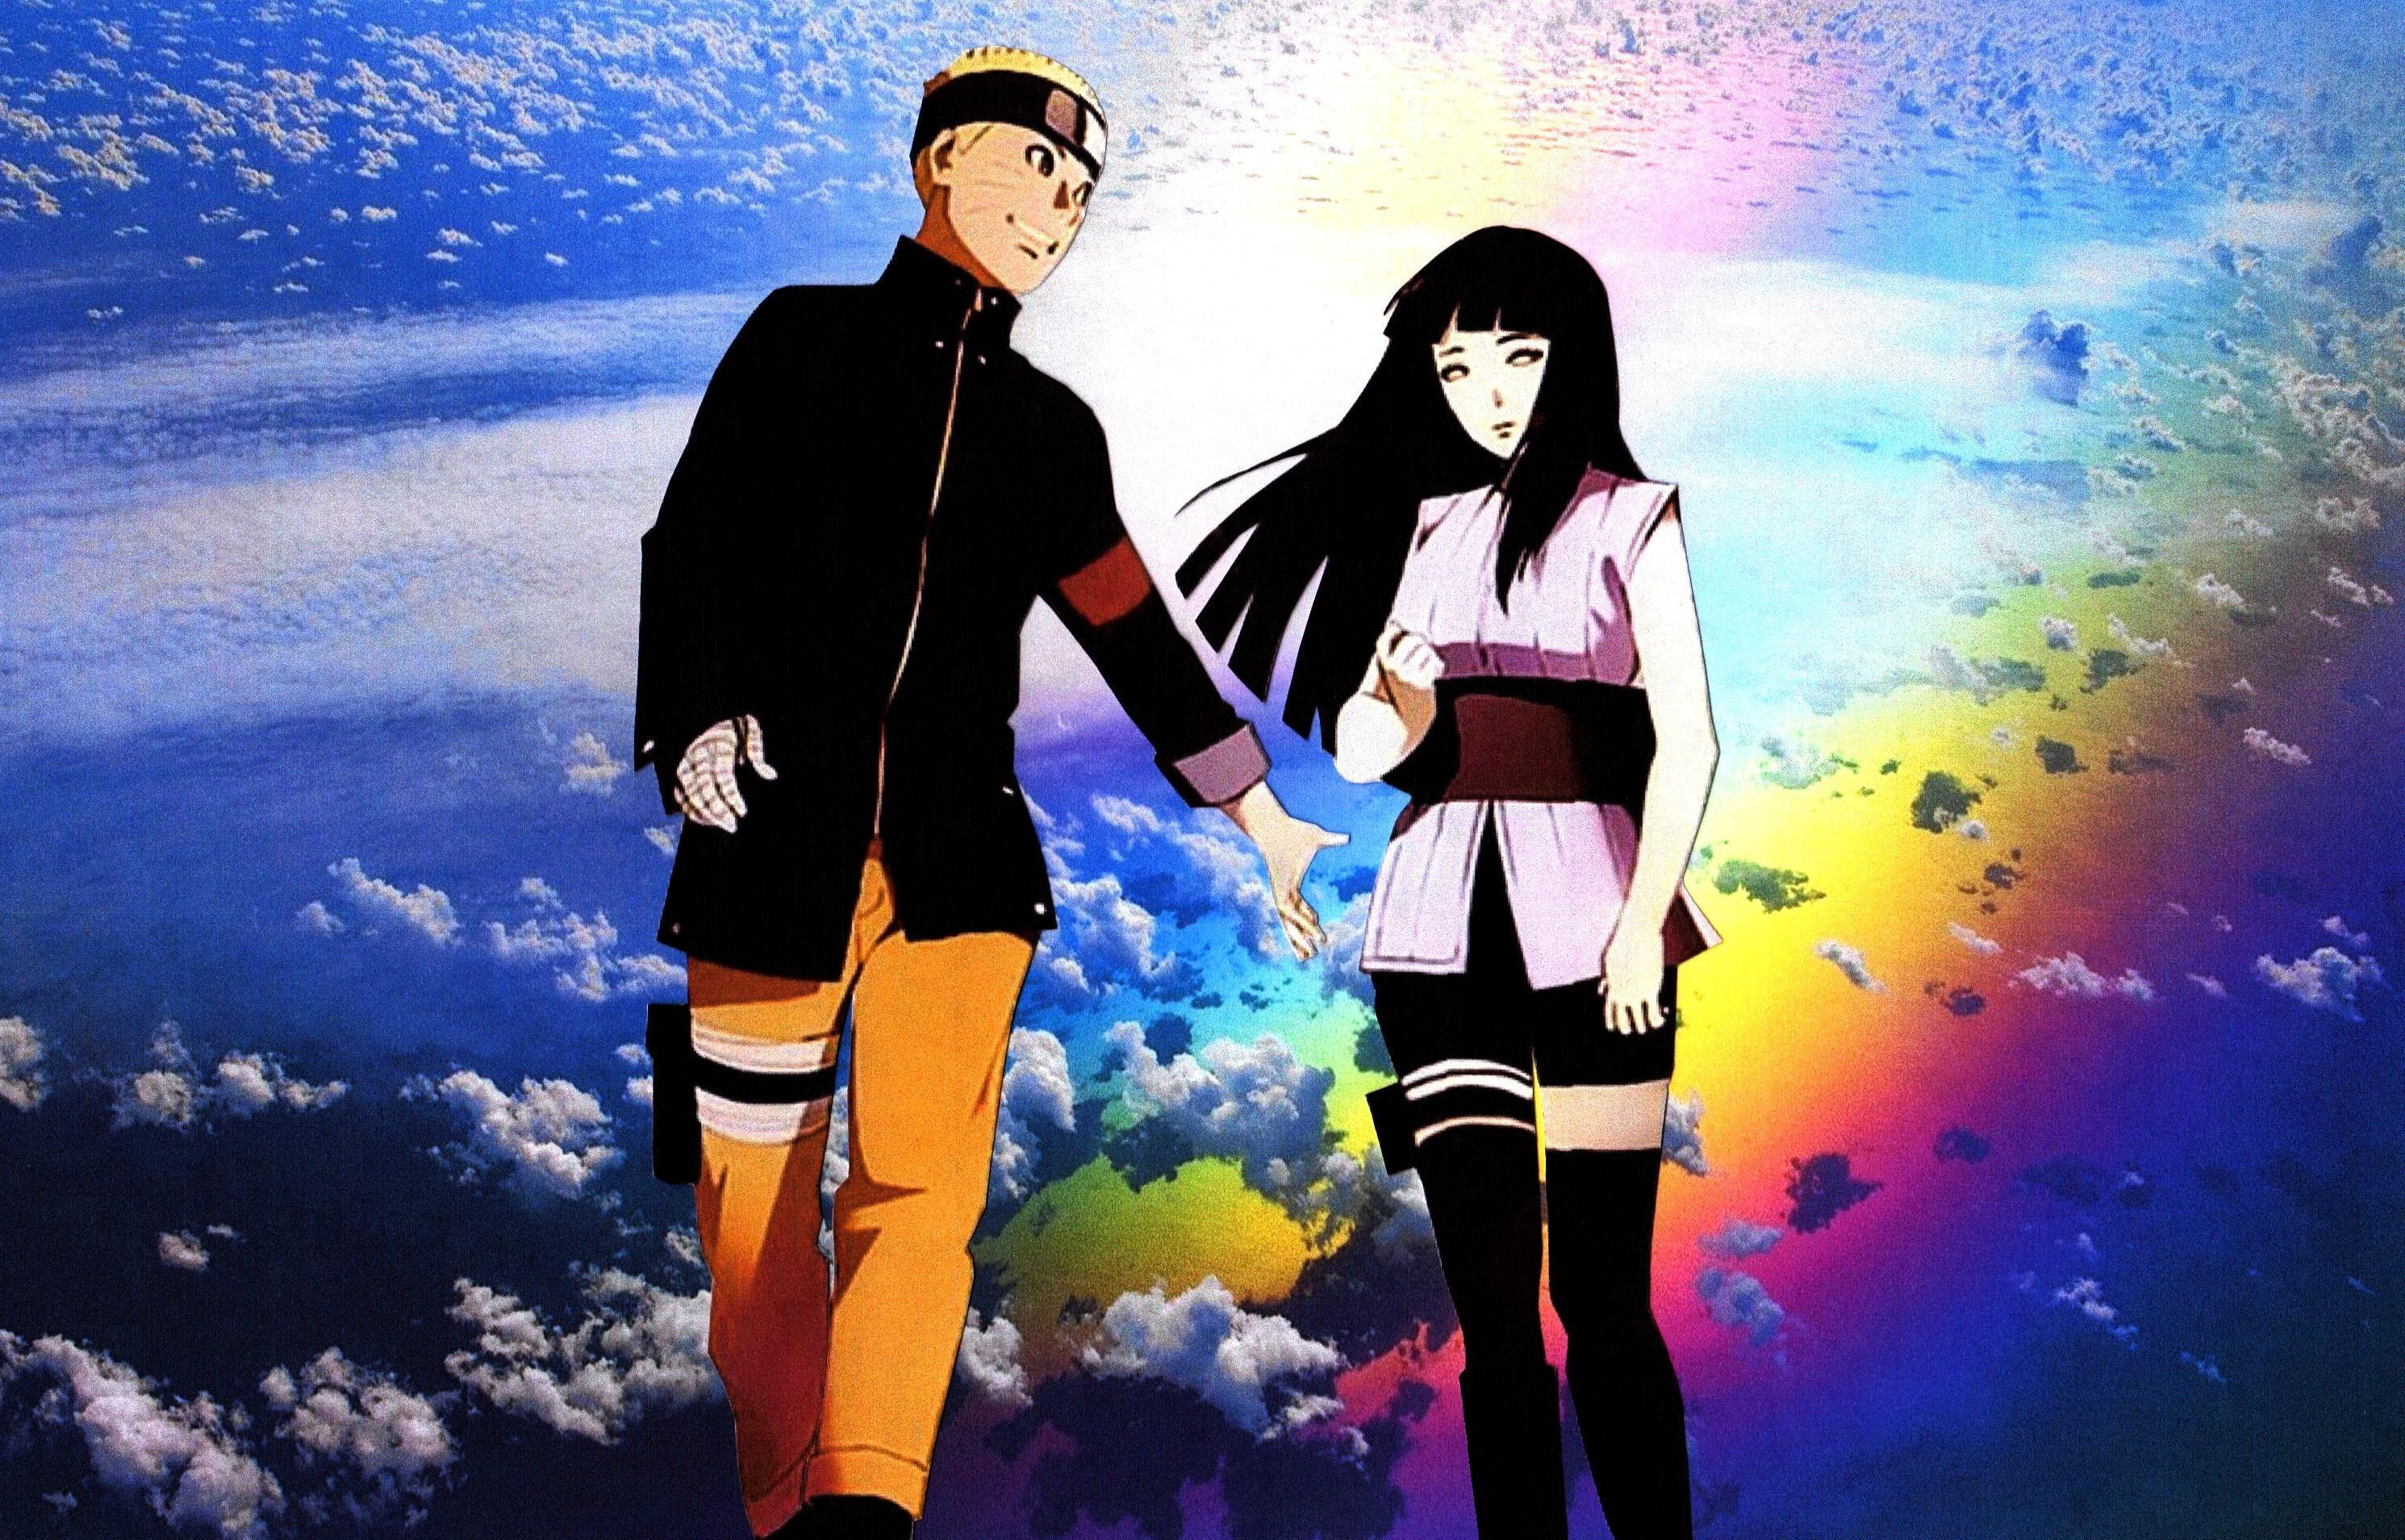 Naruto And Hinata Wallpaper - WallpaperSafari